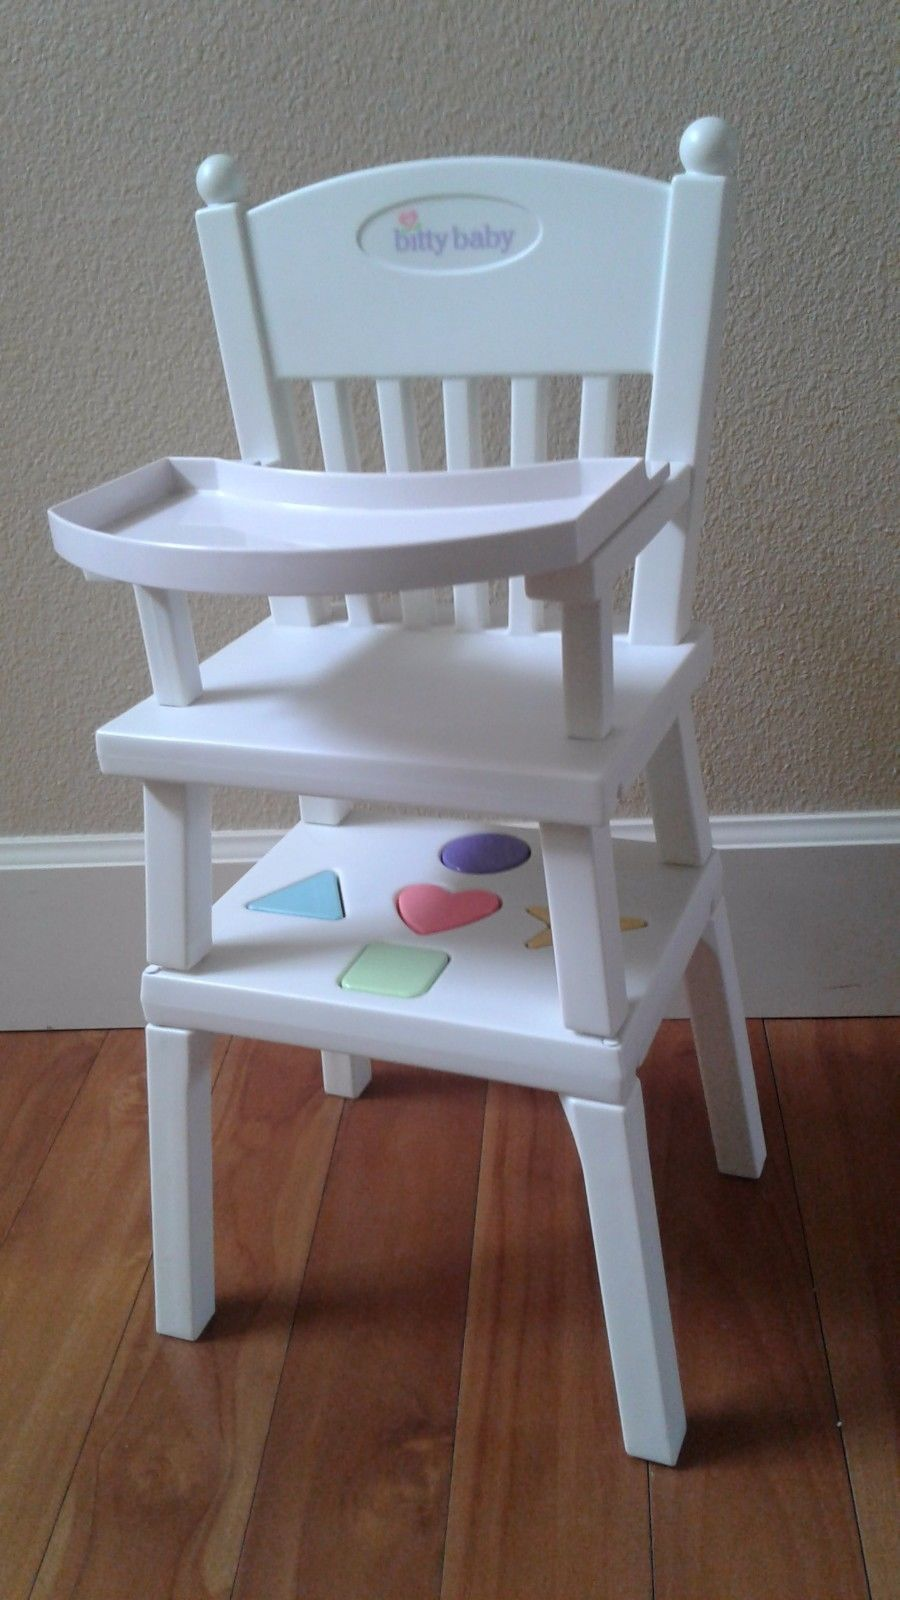 bitty baby high chair shapes dc rental retired american girl activity table all 5